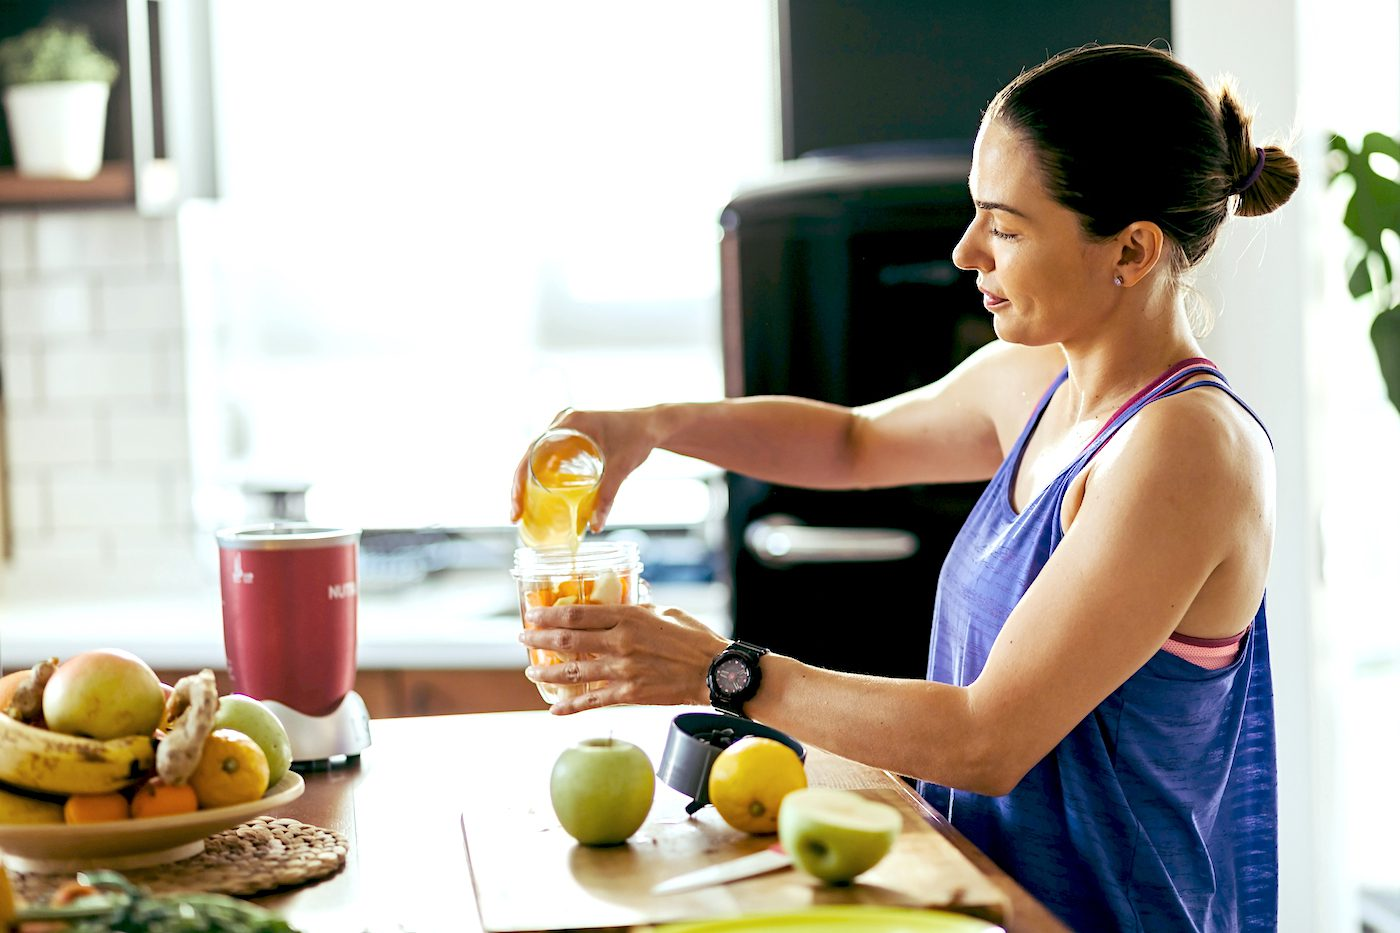 How to Detox Your Body After the Holidays